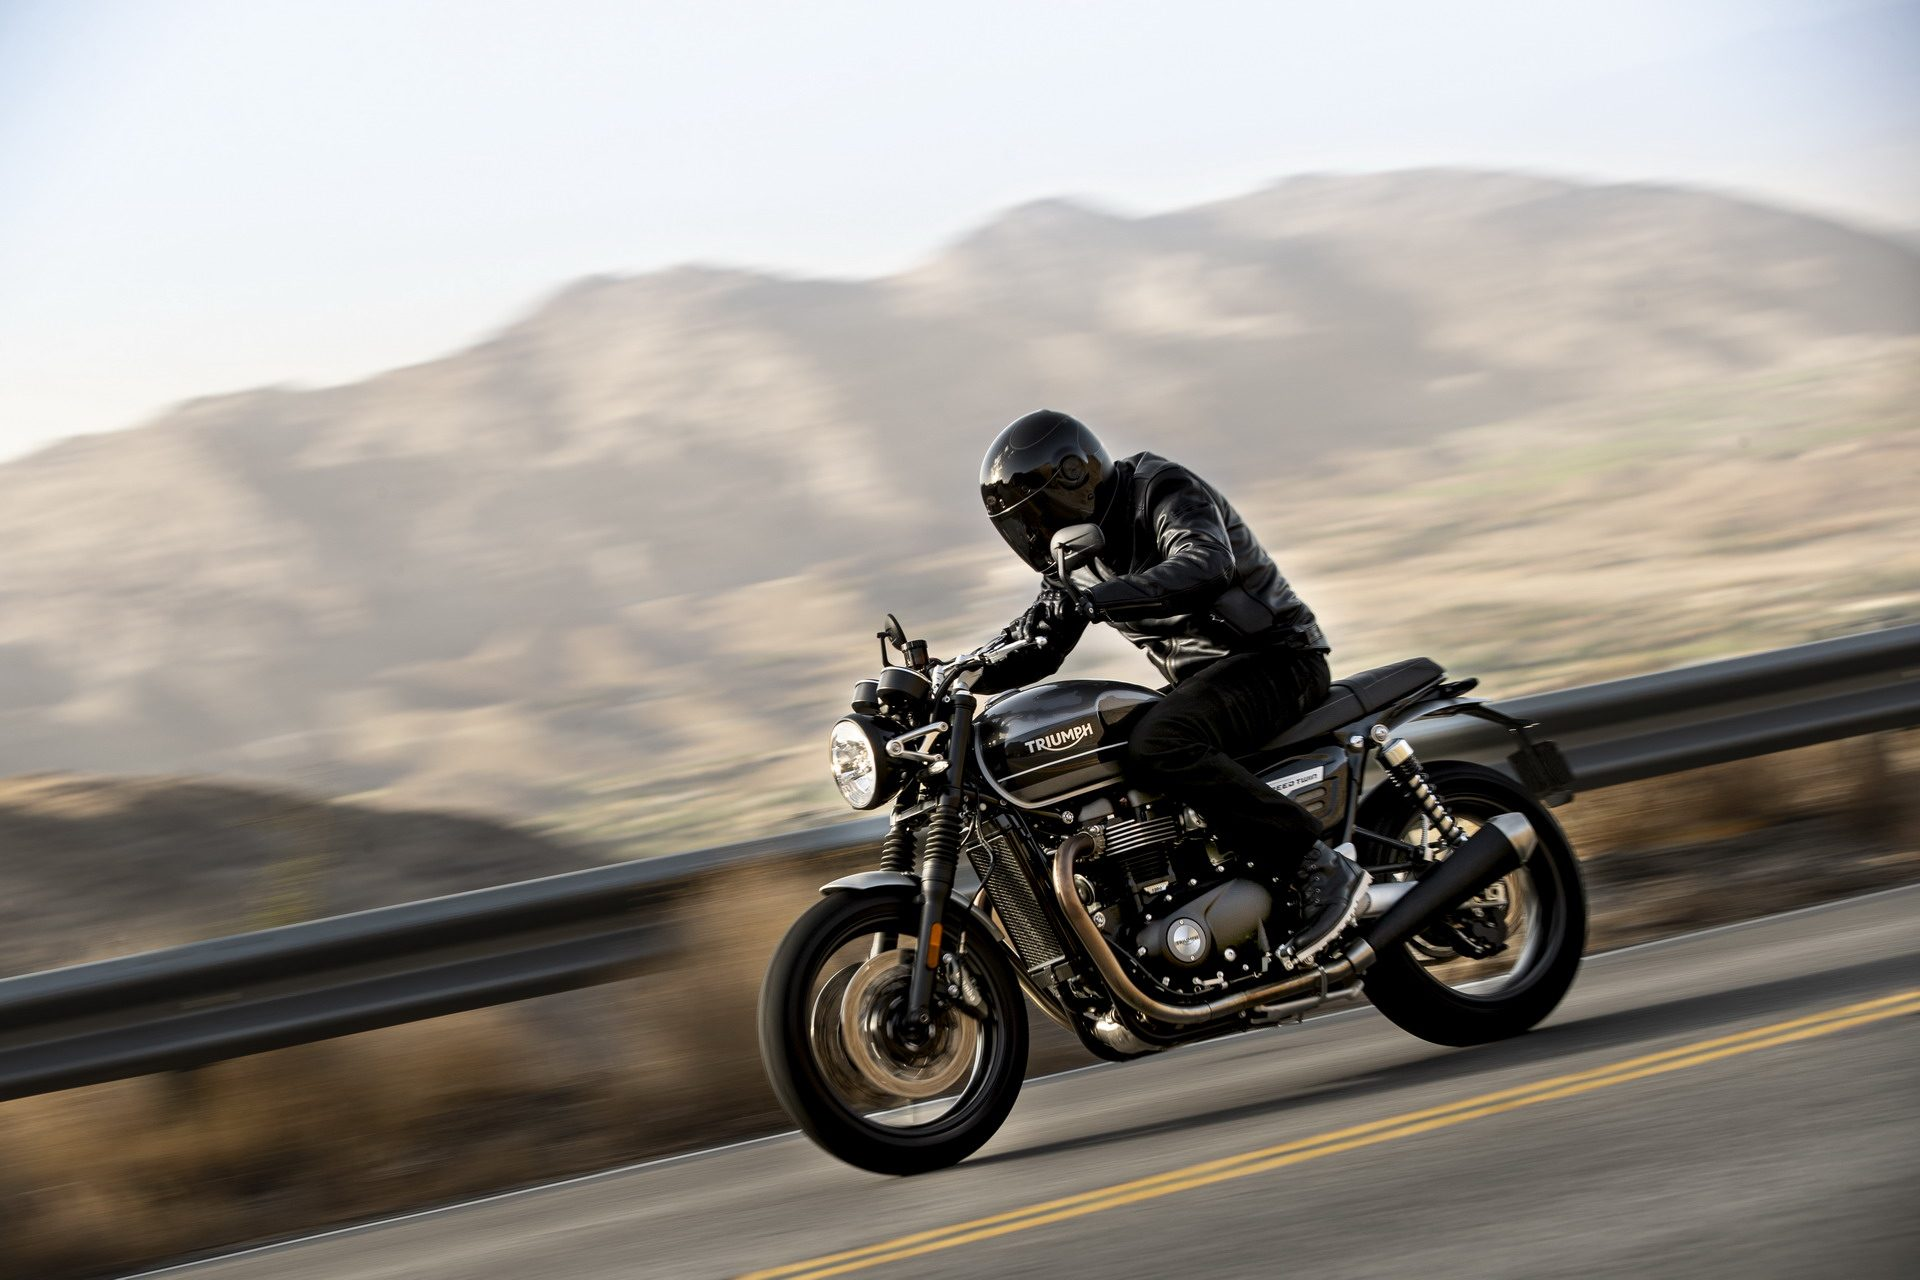 Nuova Triumph Speed Twin, rinasce la legenda inglese